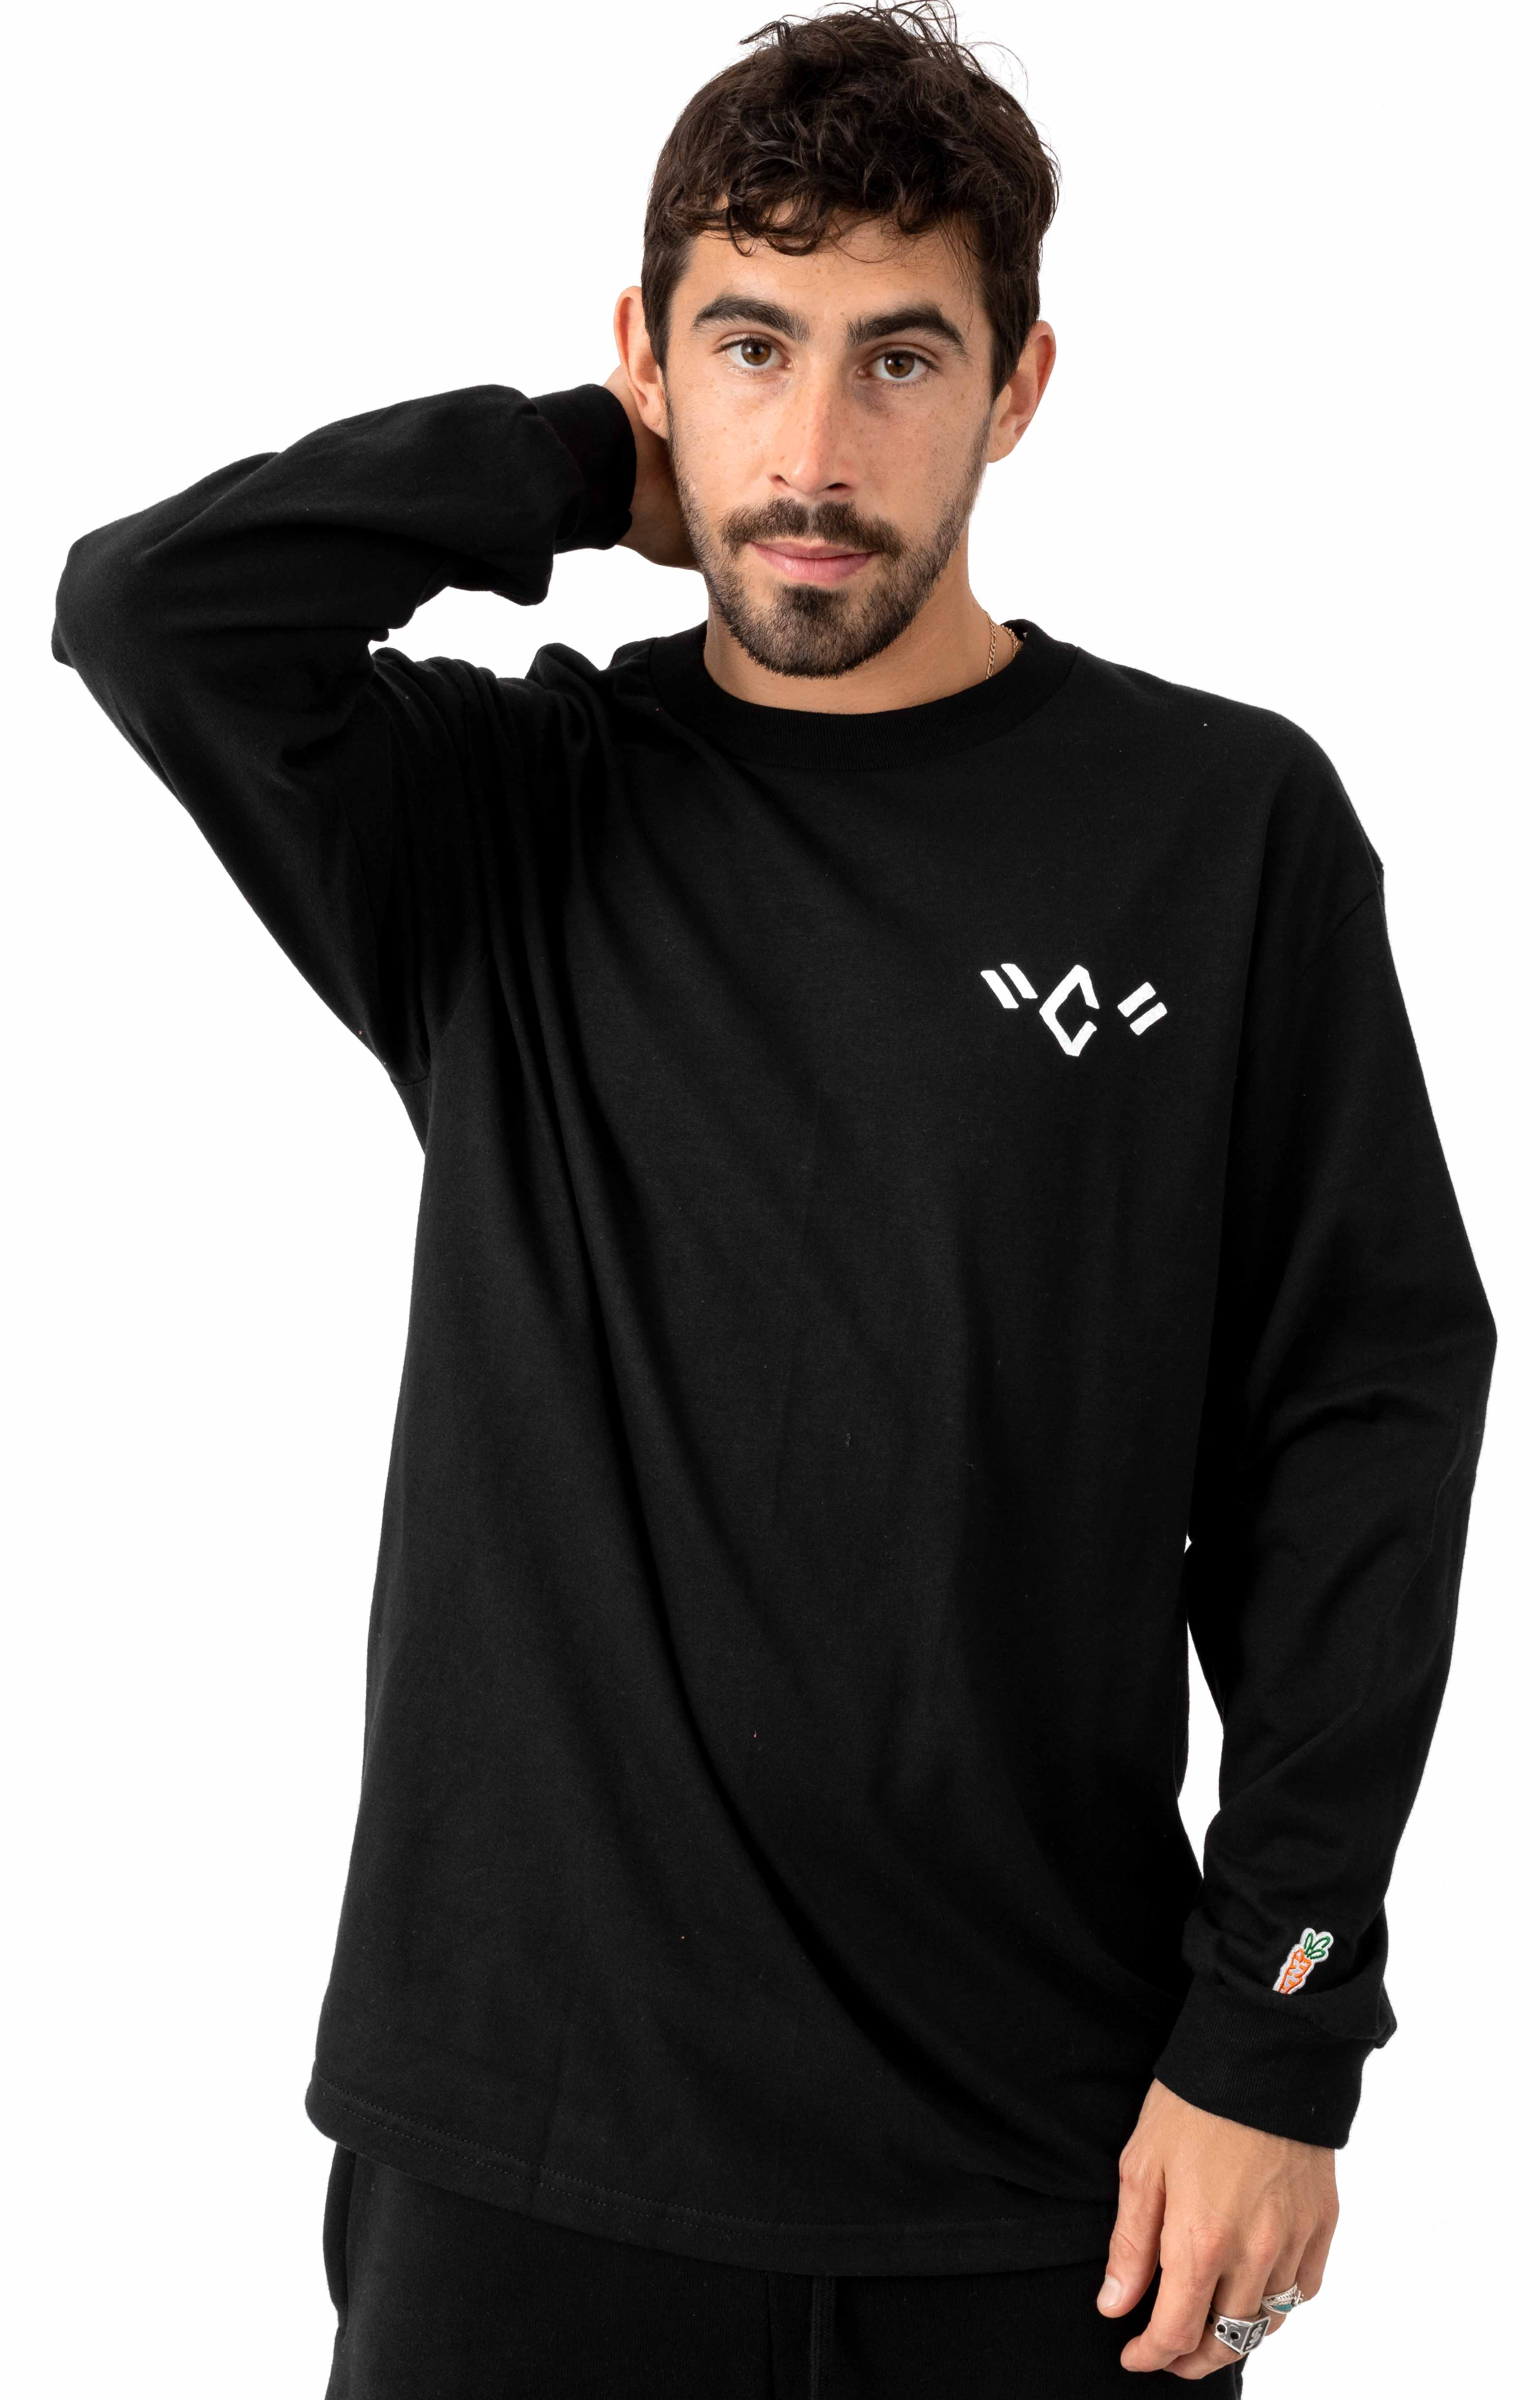 Joao C Pocket L/S Shirt - Black